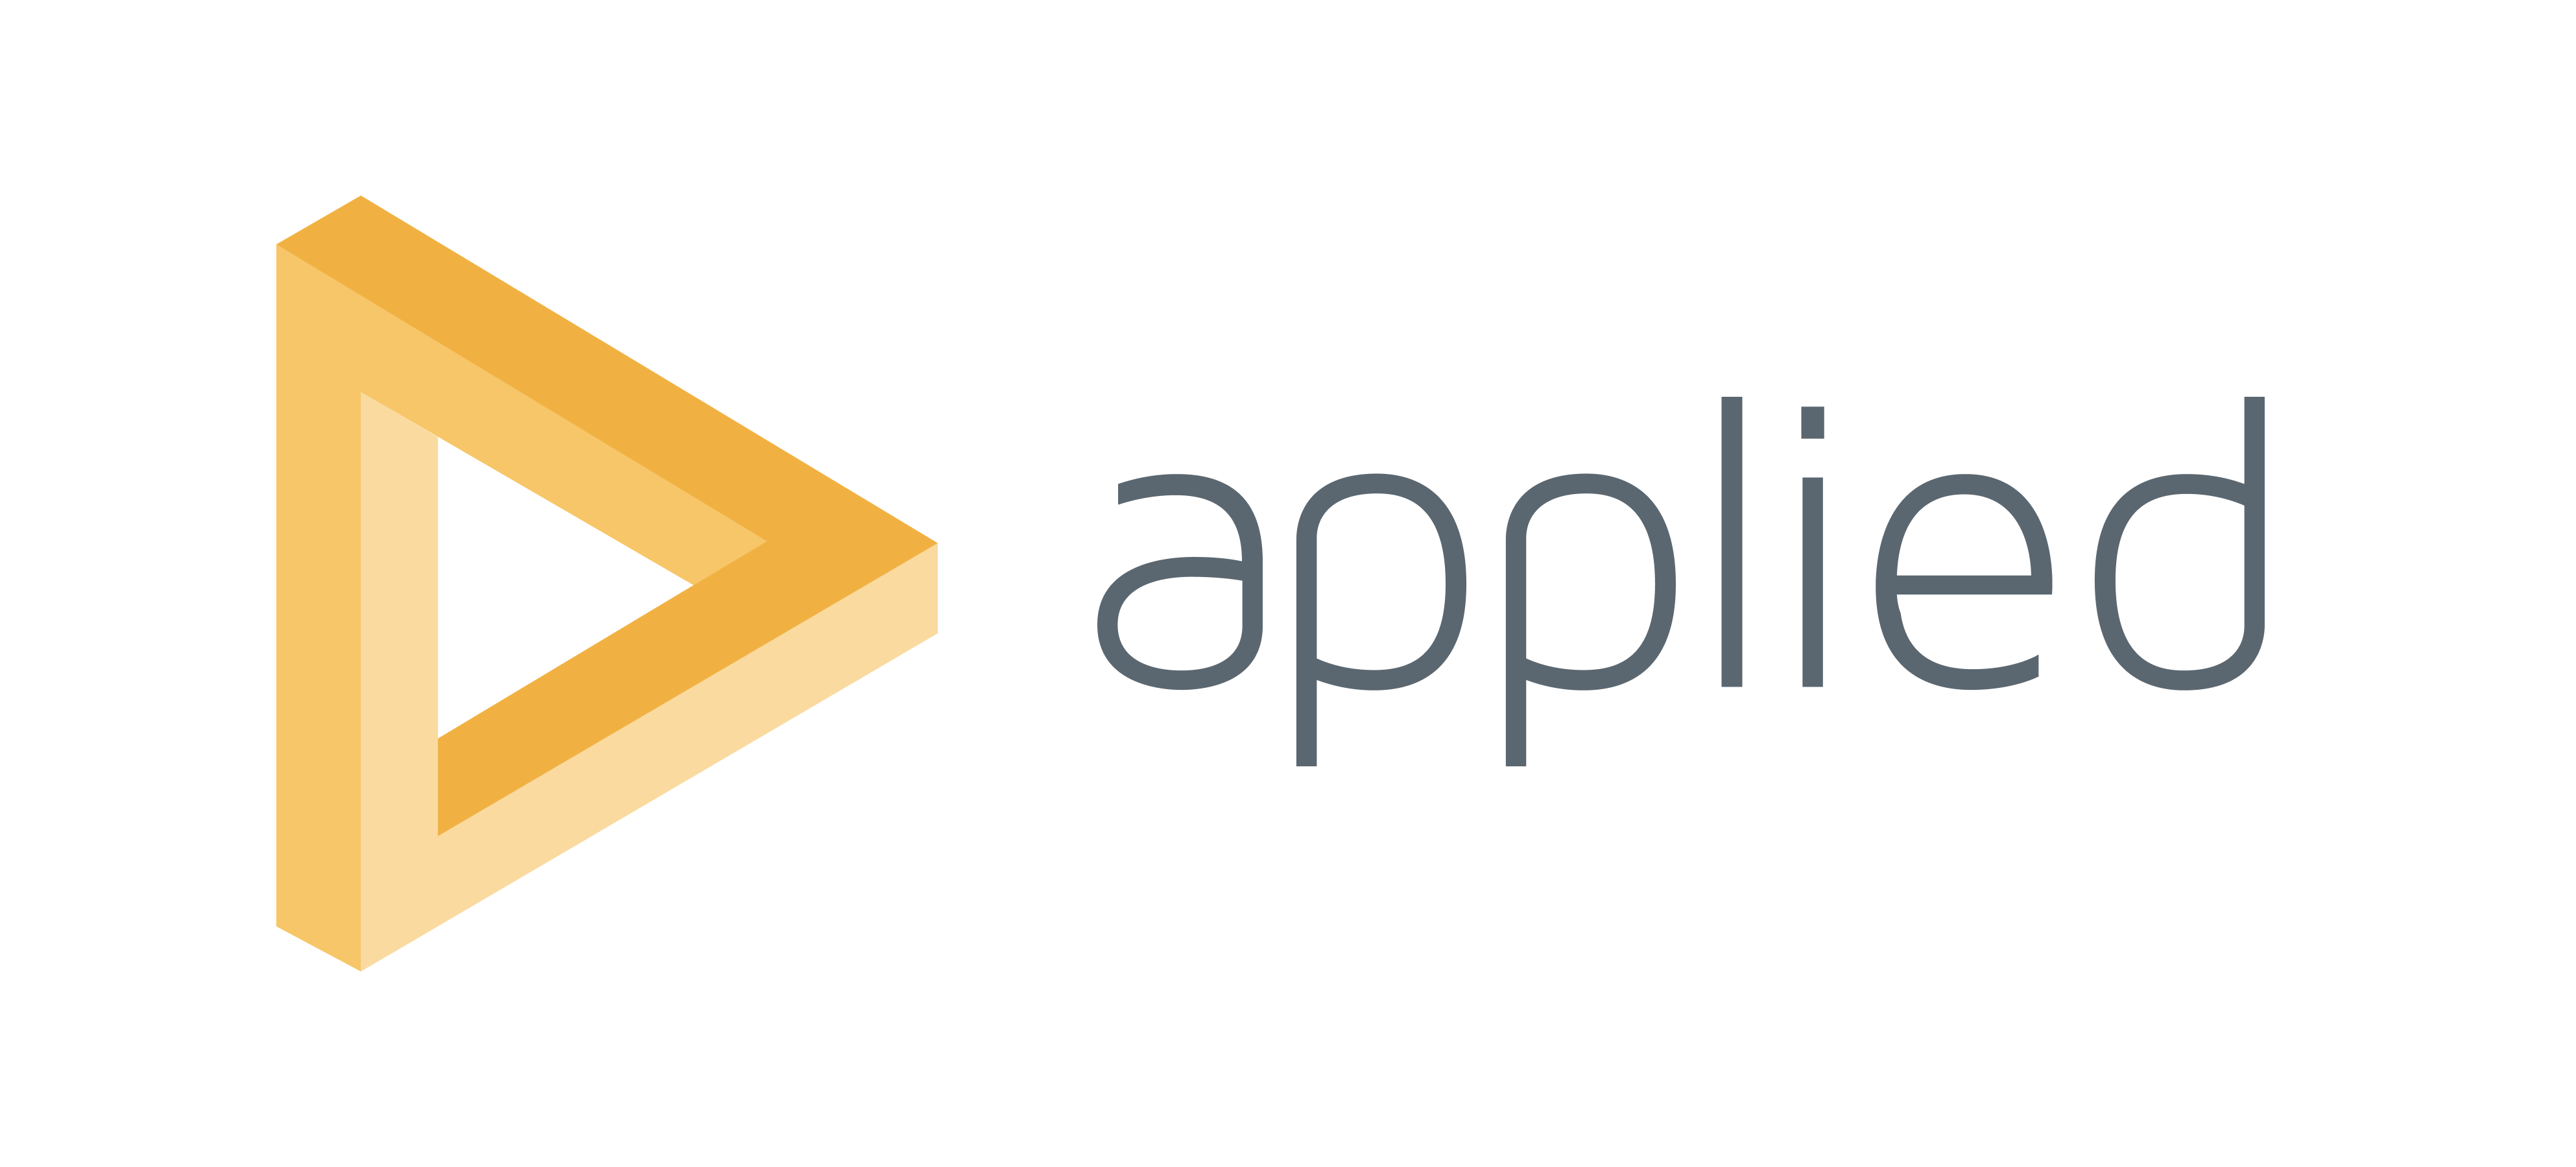 A logo for Applied, of the 'impossible triangle'